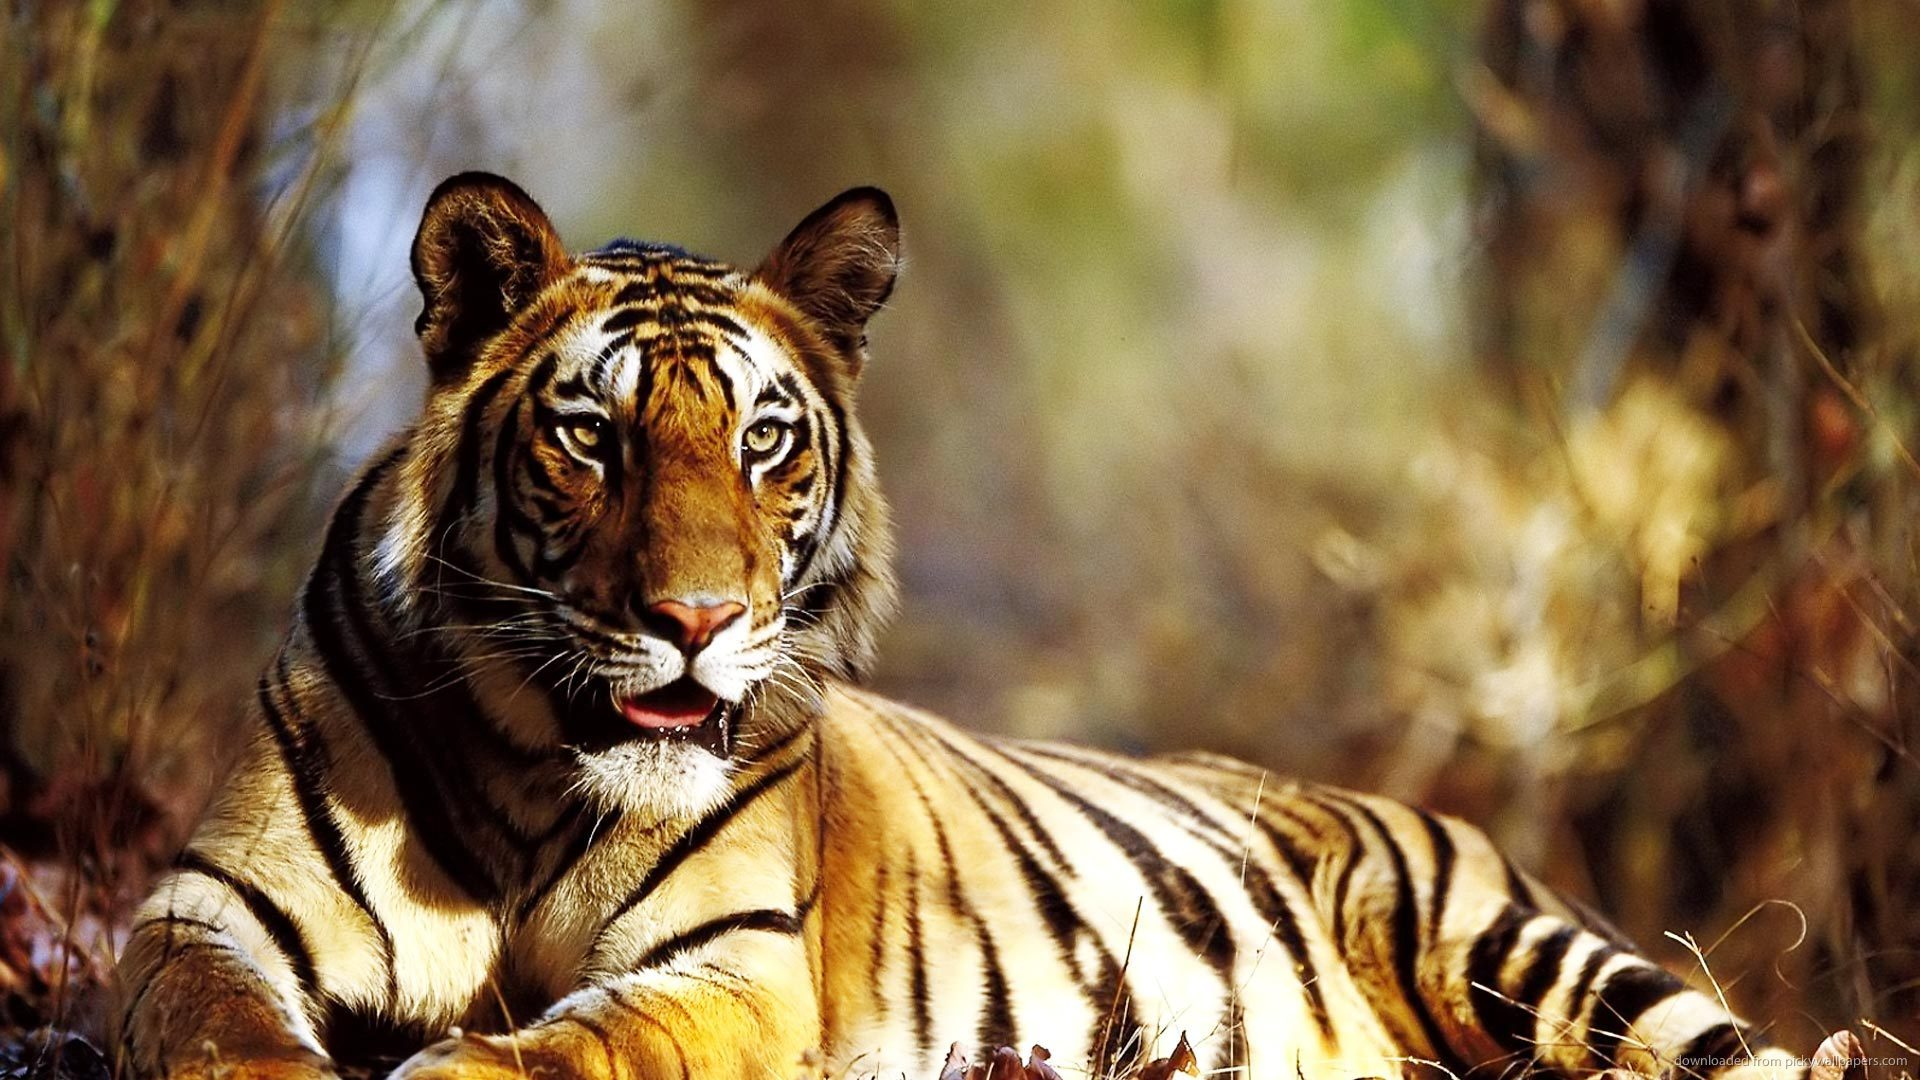 Tiger Photo Wallpaper High Resolution Wallpaper Full Size | Nature